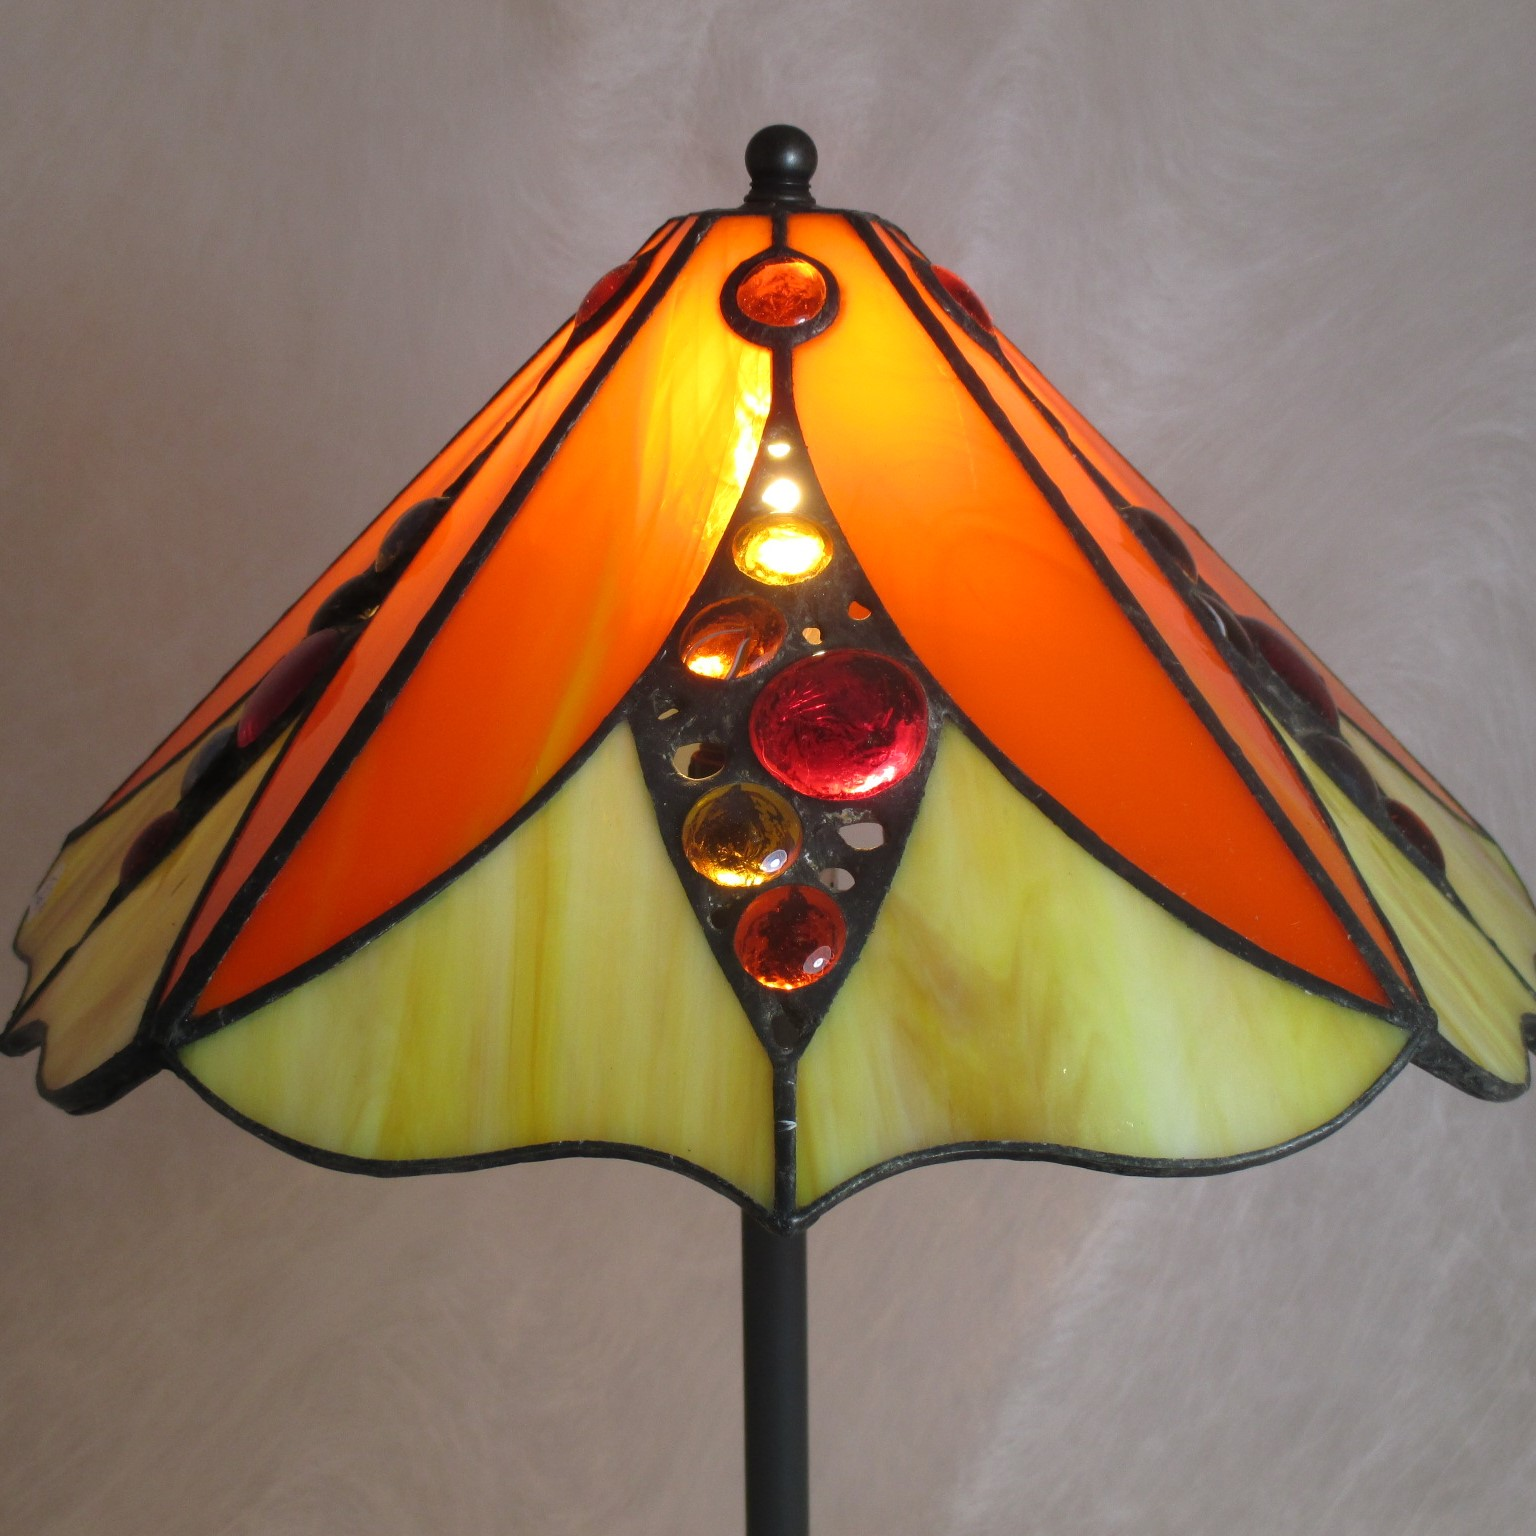 Lampe sur pied 5 pans Jaune, orange